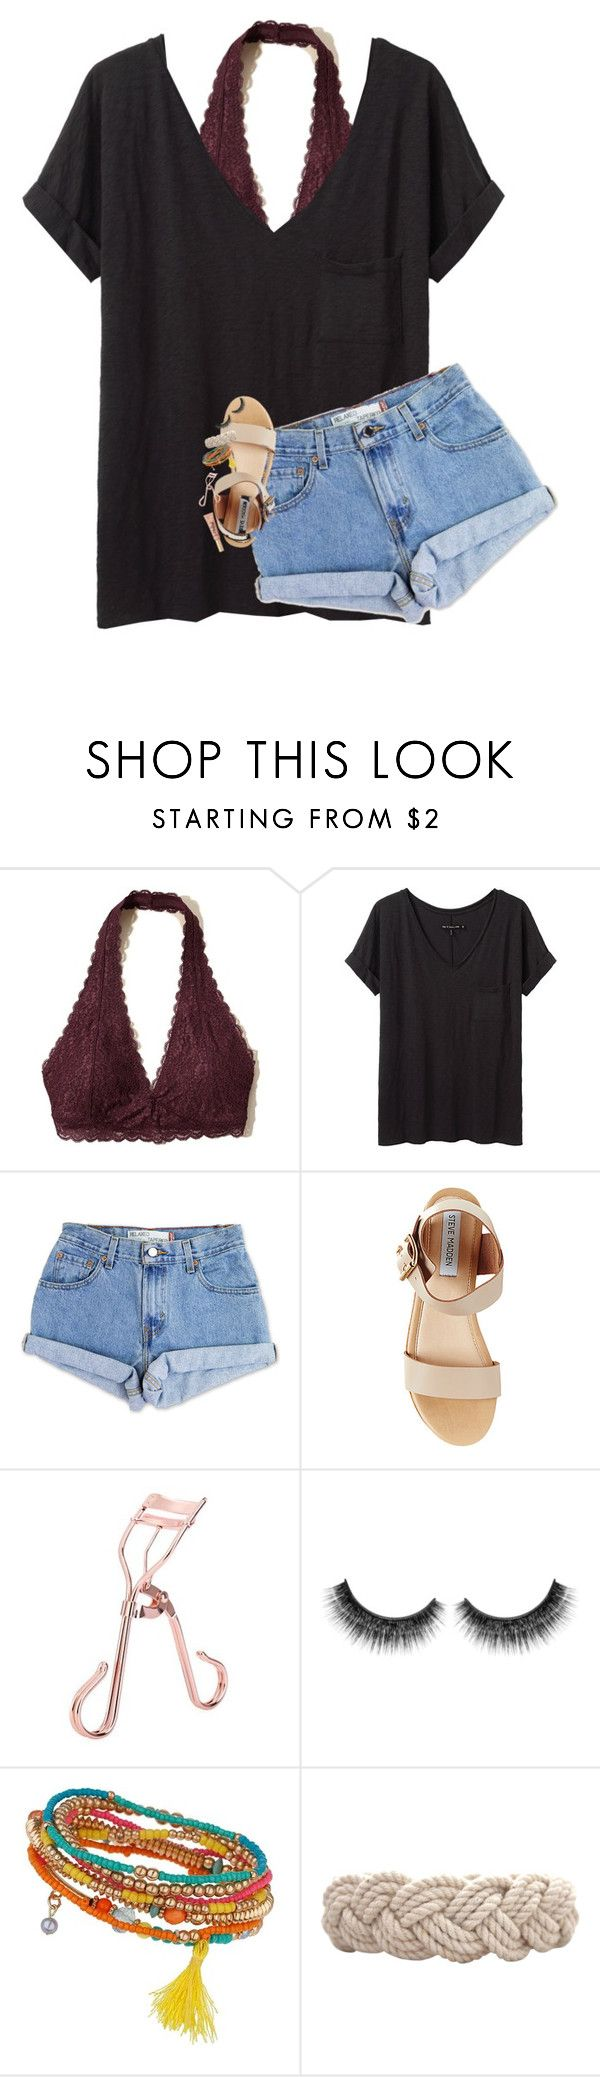 """""""went shopping today"""" by lindsaygreys ❤ liked on Polyvore featuring Hollister Co., rag & bone/JEAN, Levi's, Steve Madden, Miss Selfridge and Swell"""